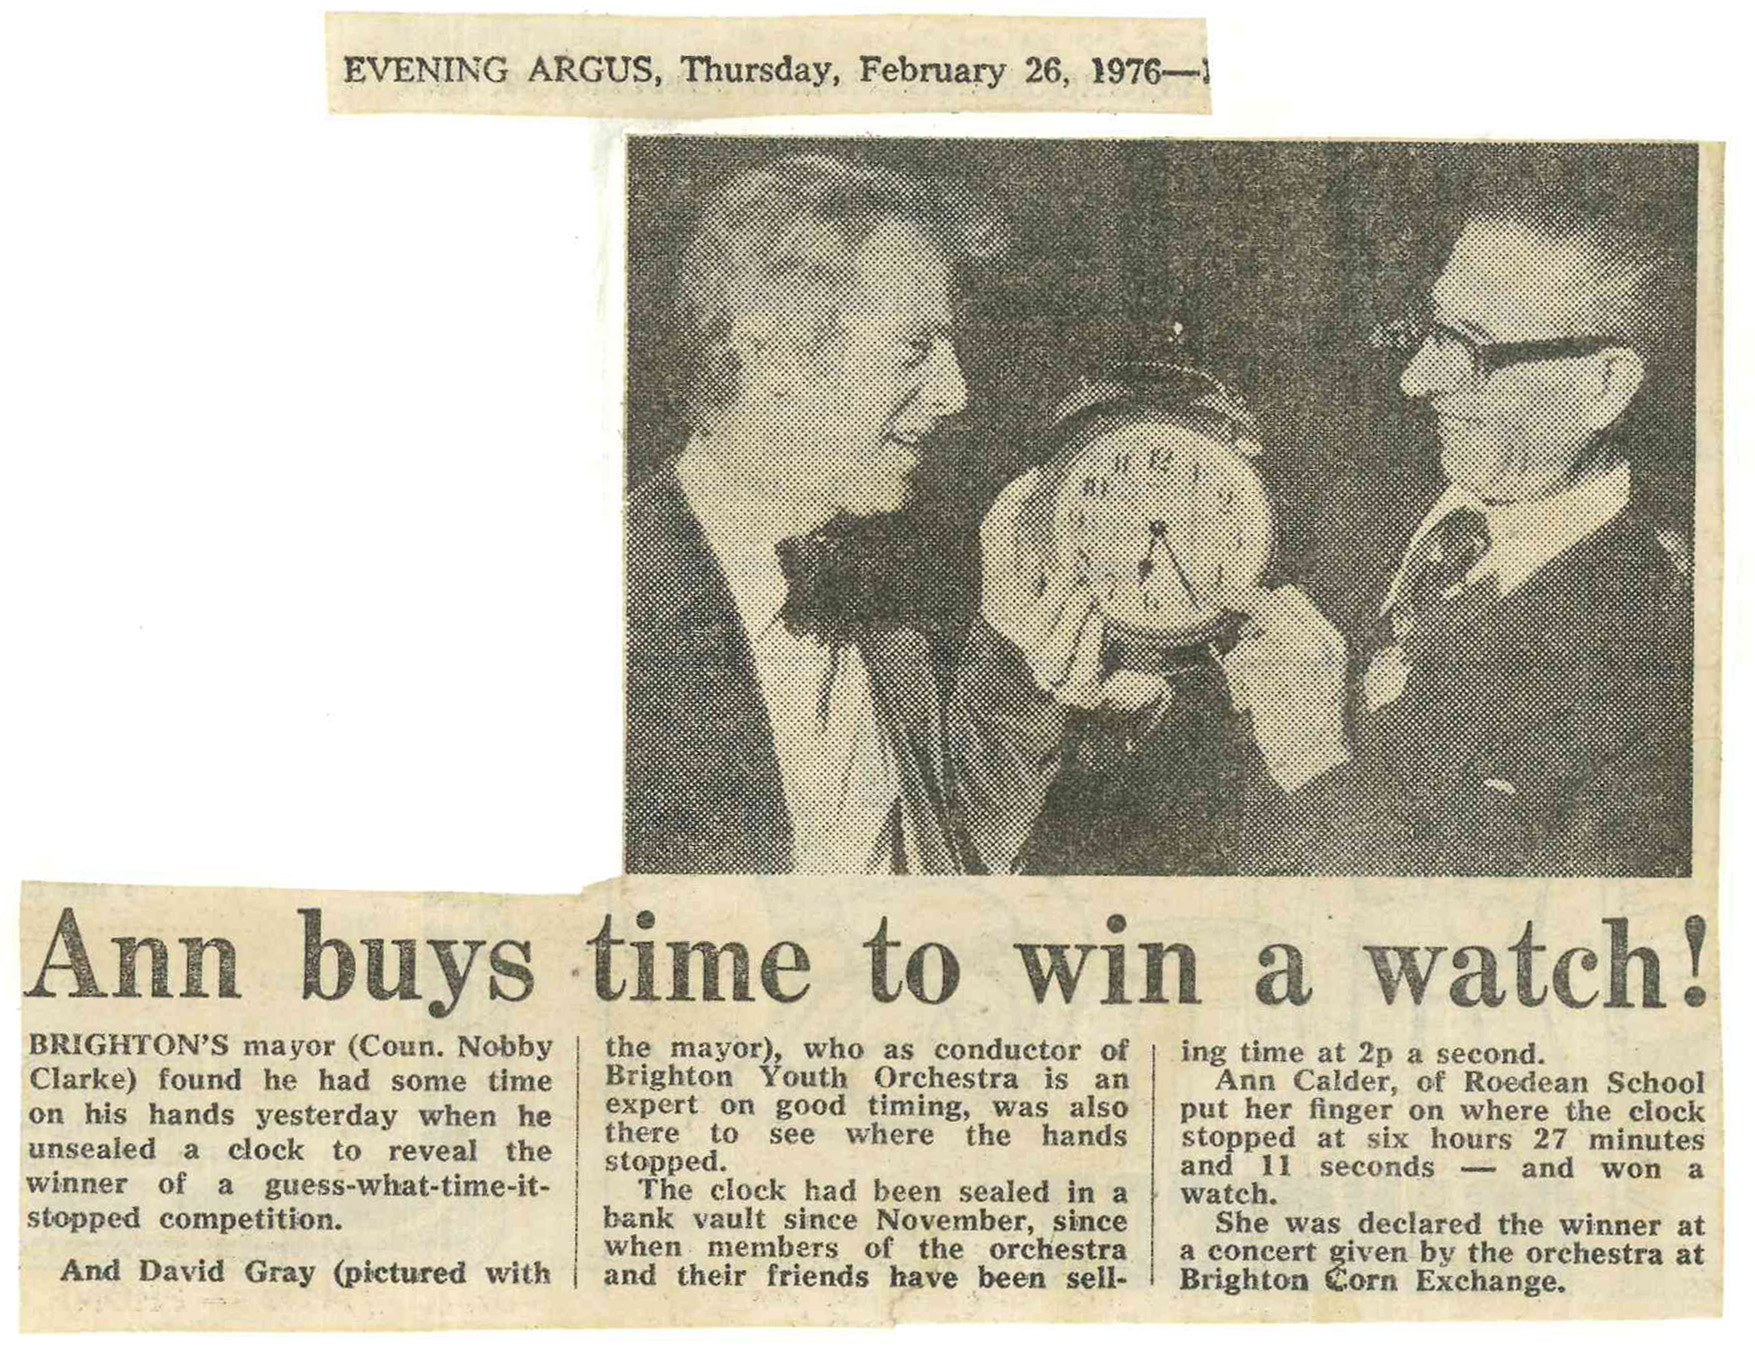 00023-Evening Argus- David Gray, 26th February 1976.jpg